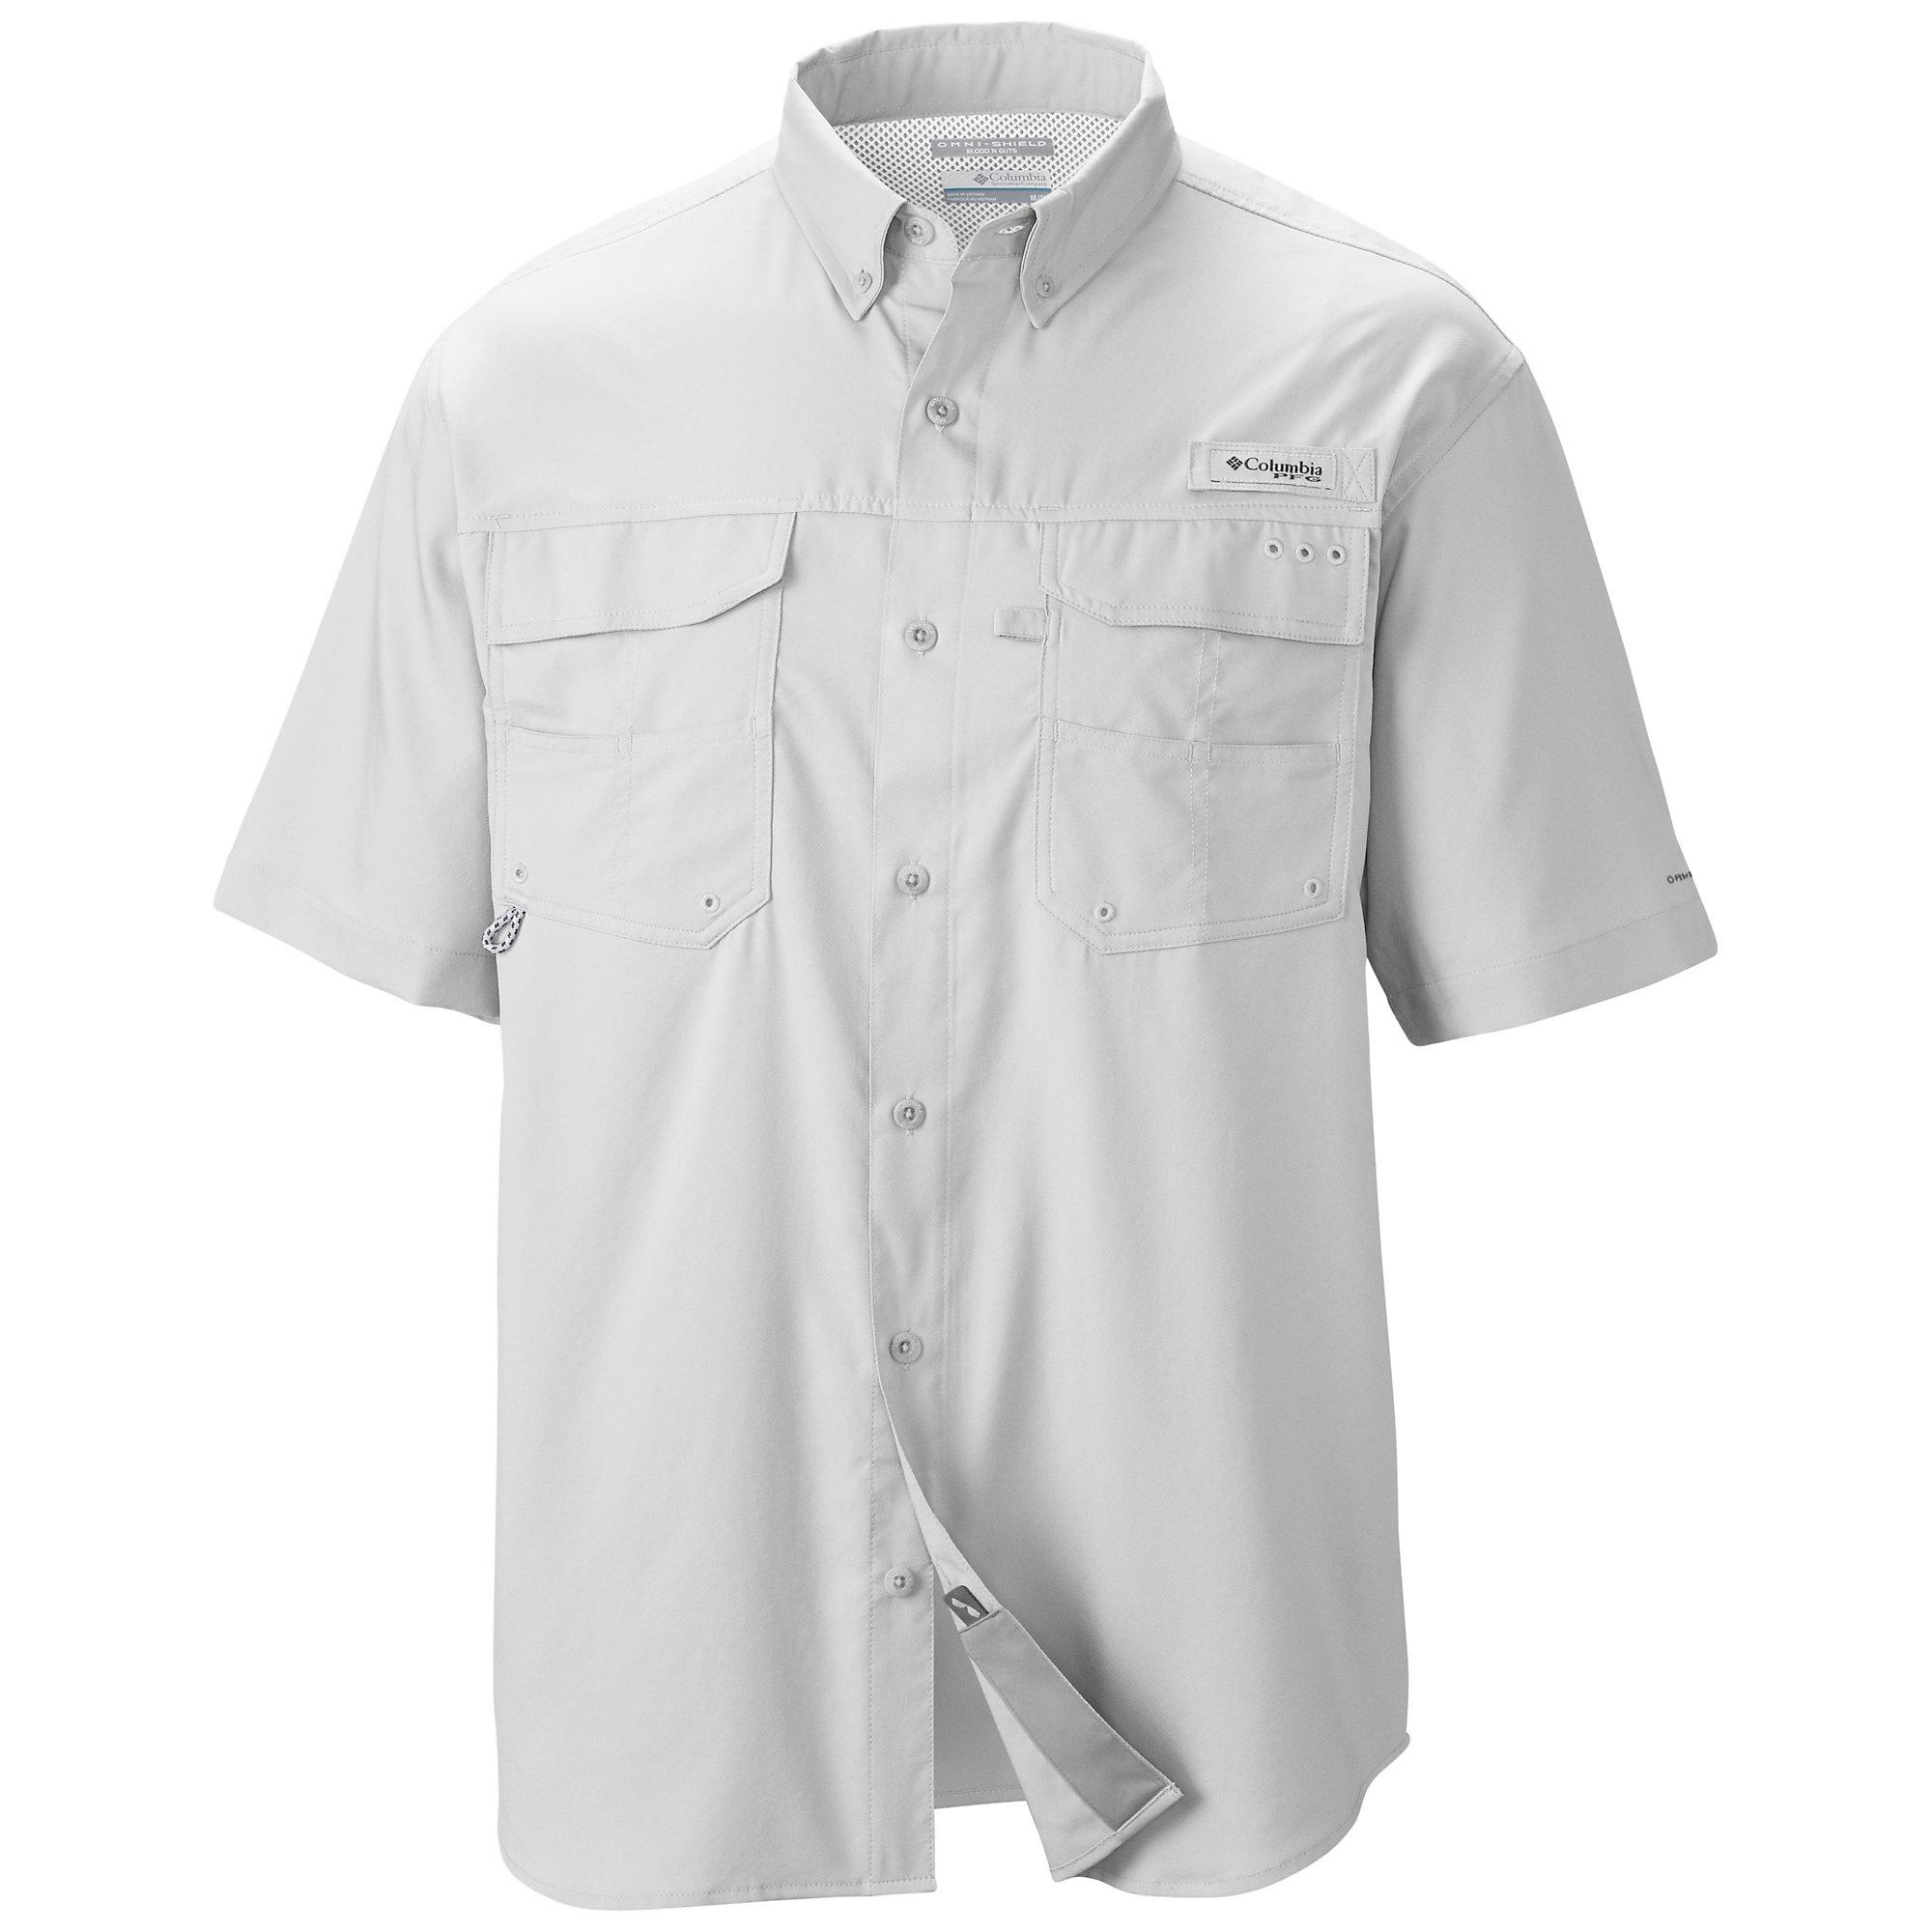 407238f7bb2 Columbia - White Blood And Guts for Men - Lyst. View fullscreen